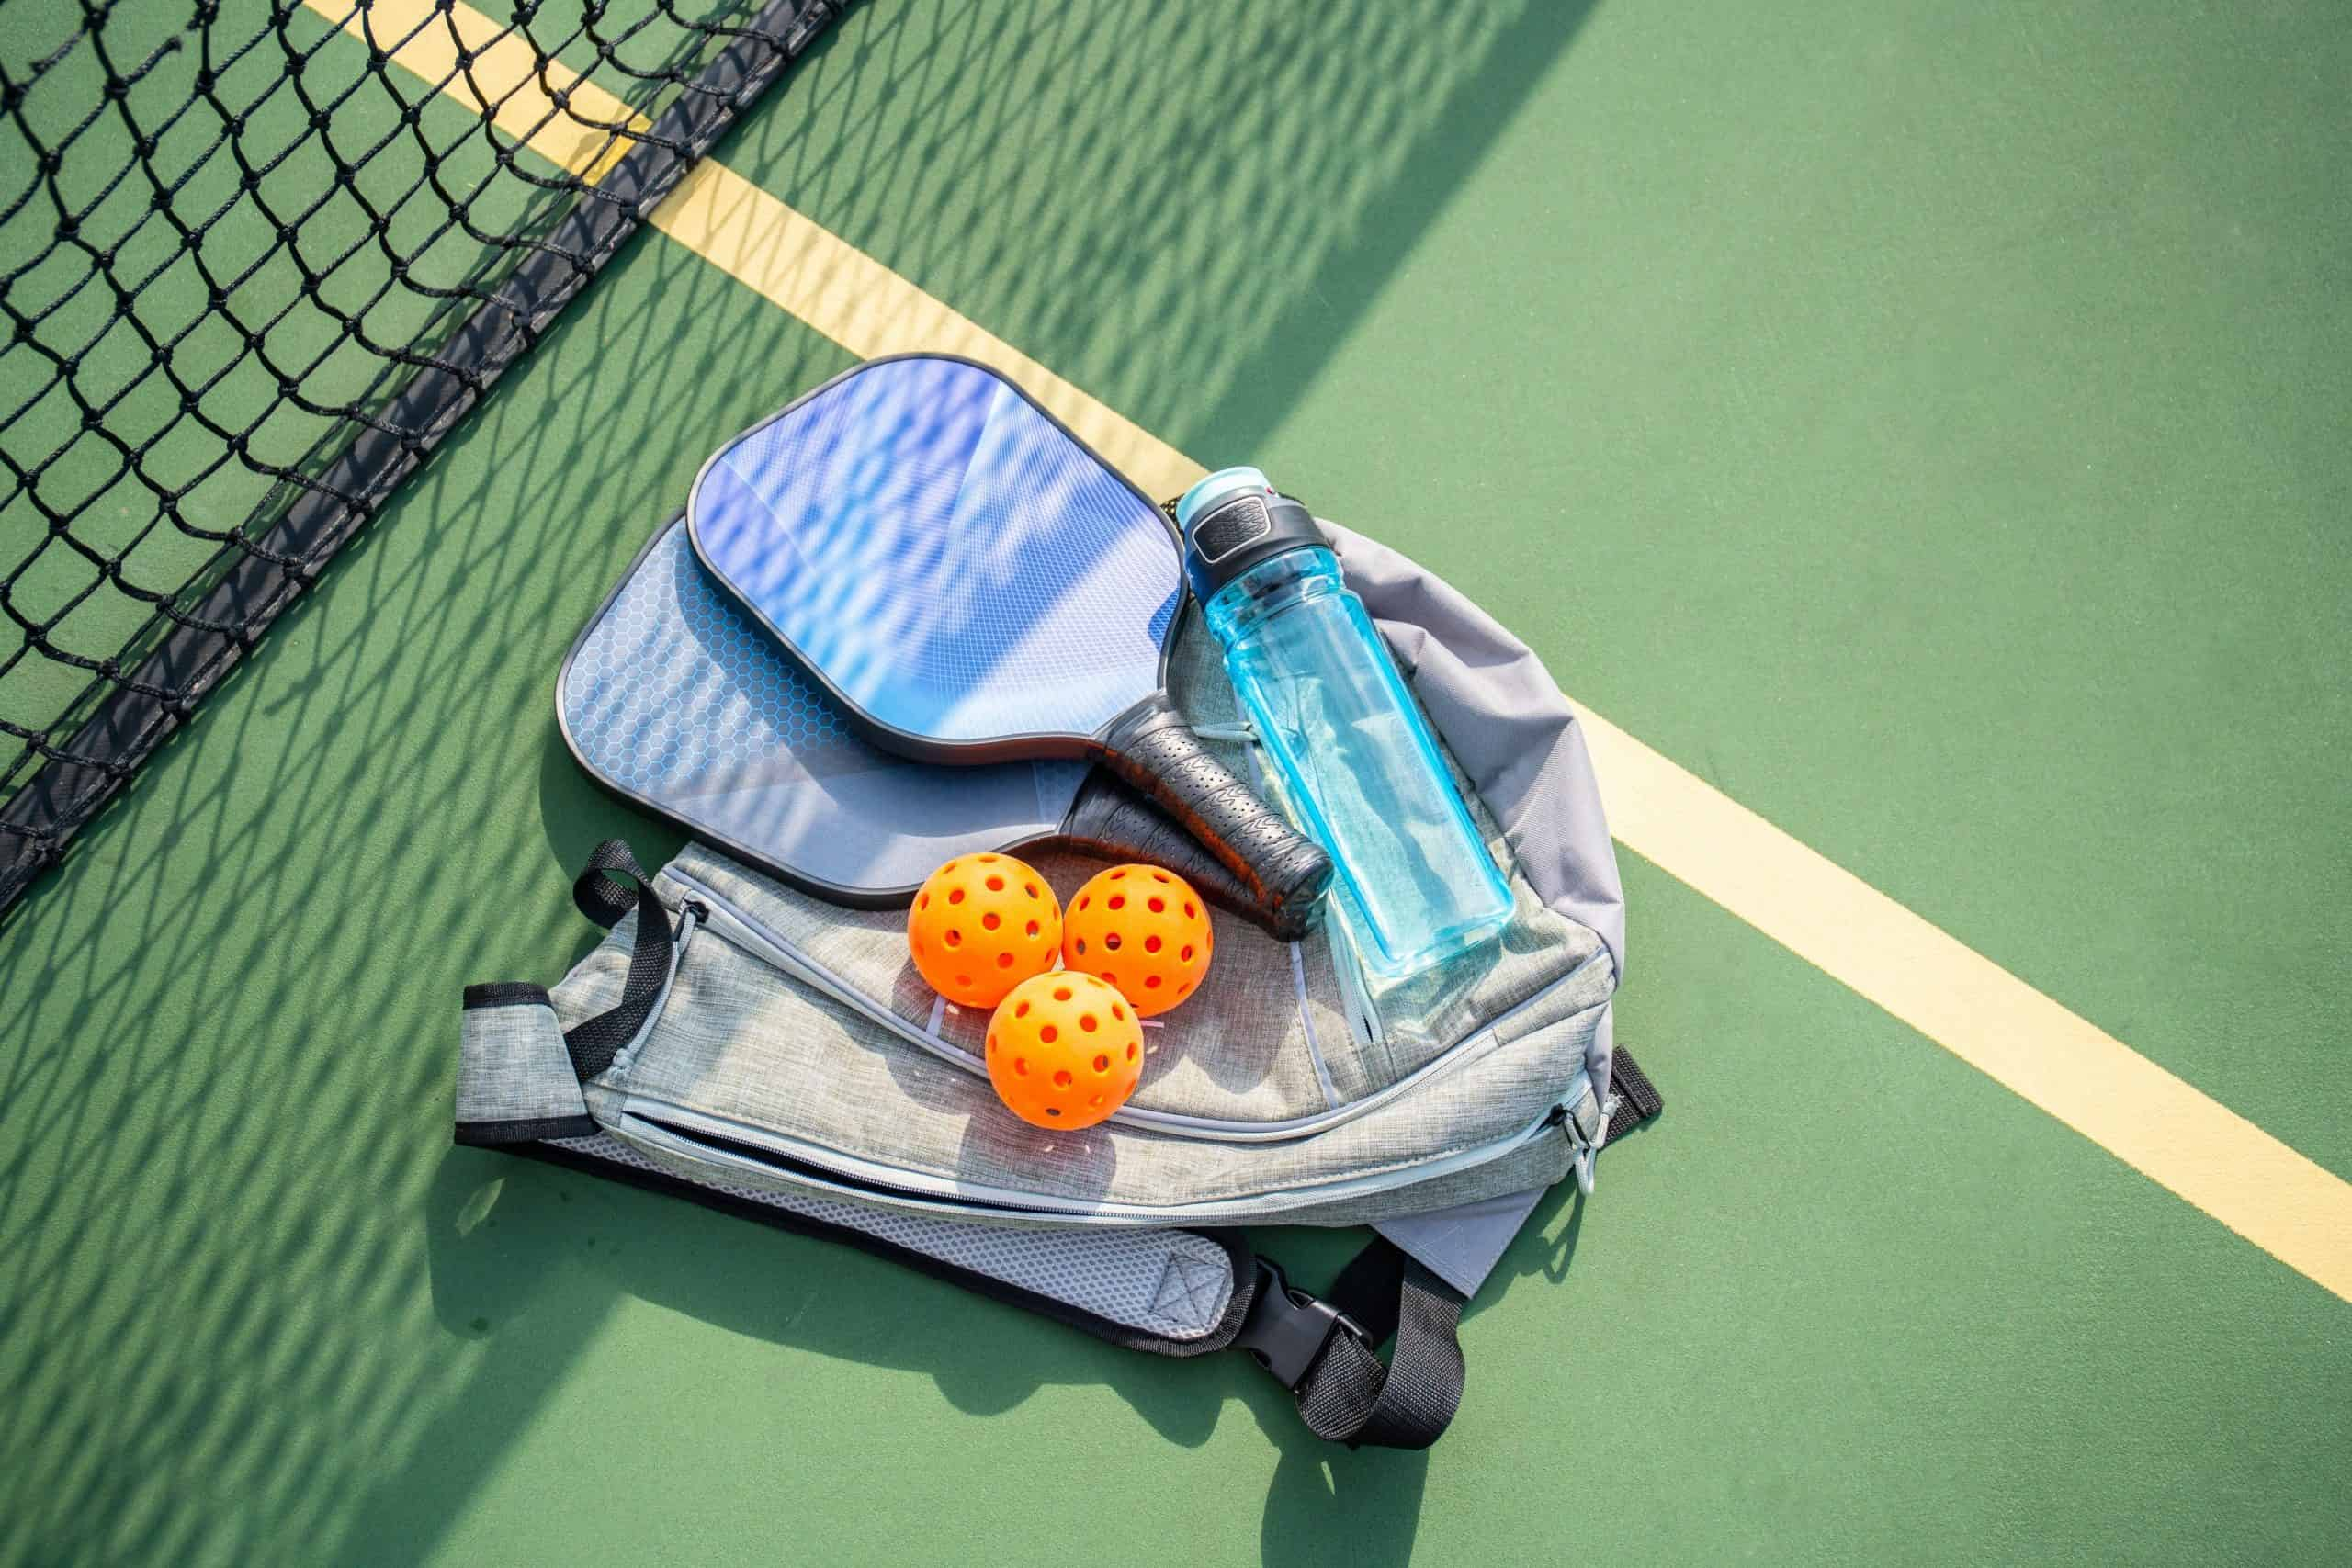 pickleball paddles, pickleball balls, pickleball bags & water bottle